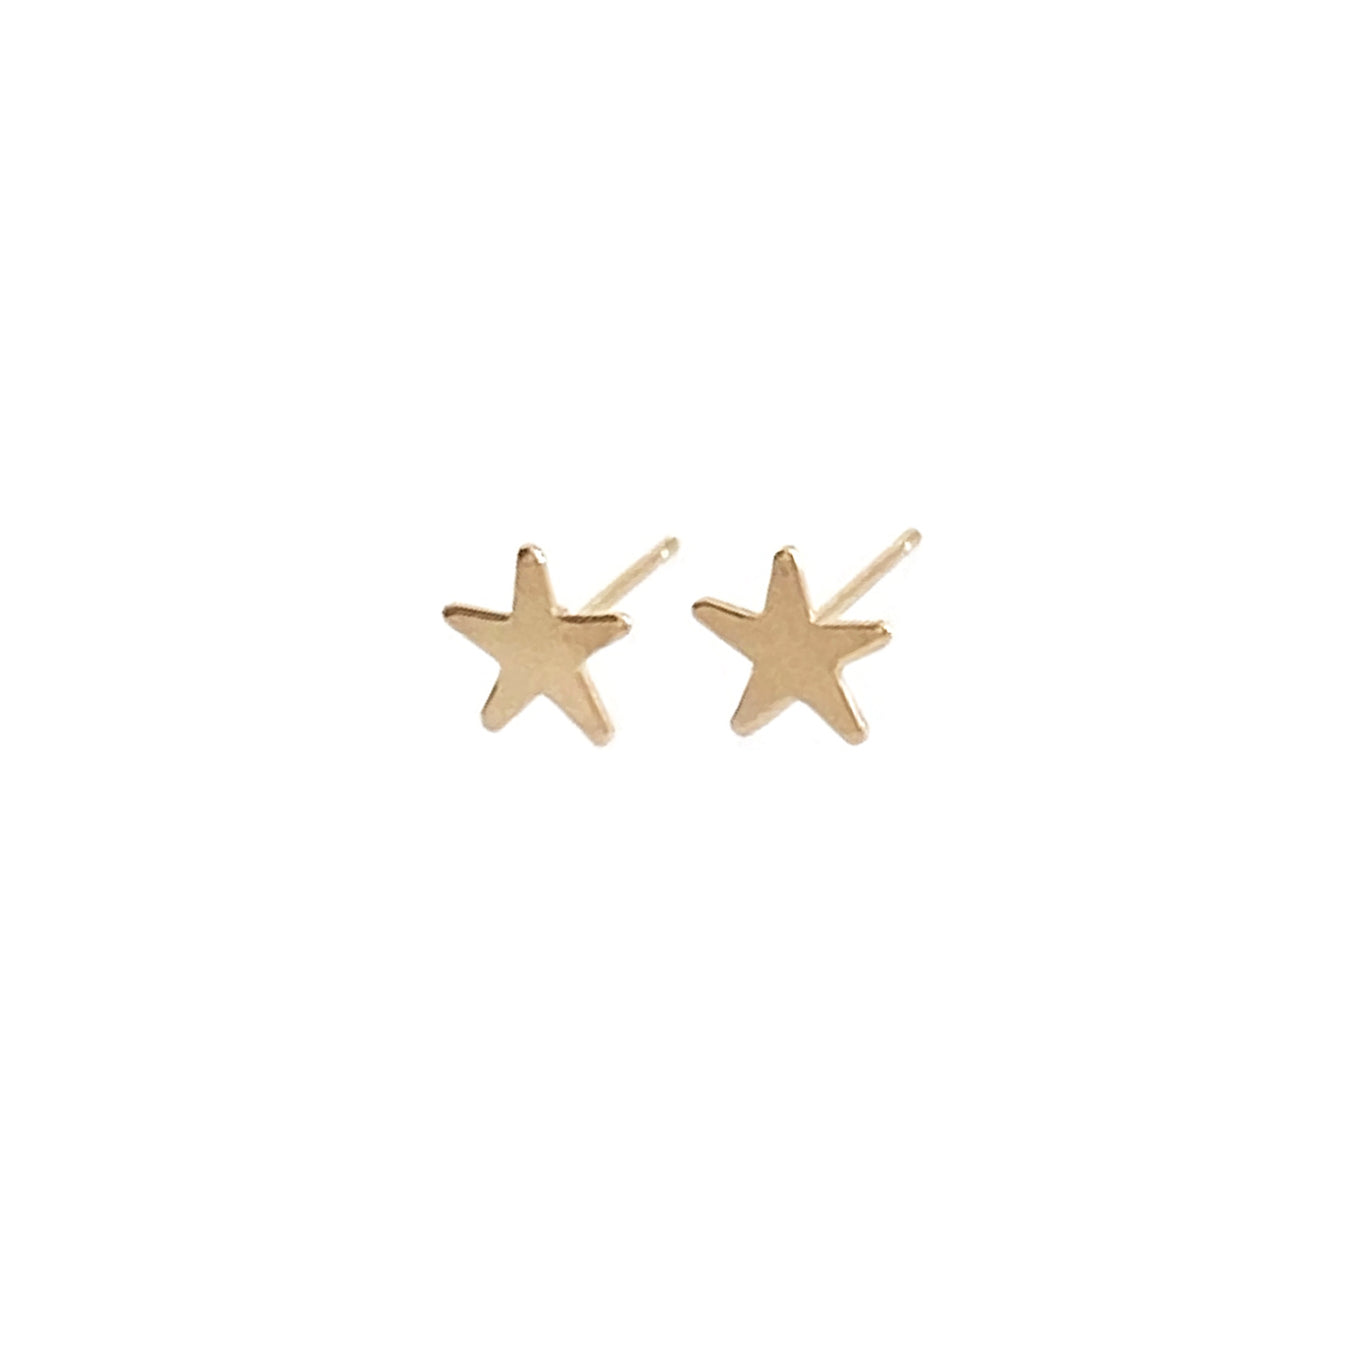 14k gold star stud earrings for everyday earrings. It's great to layer with other earrings